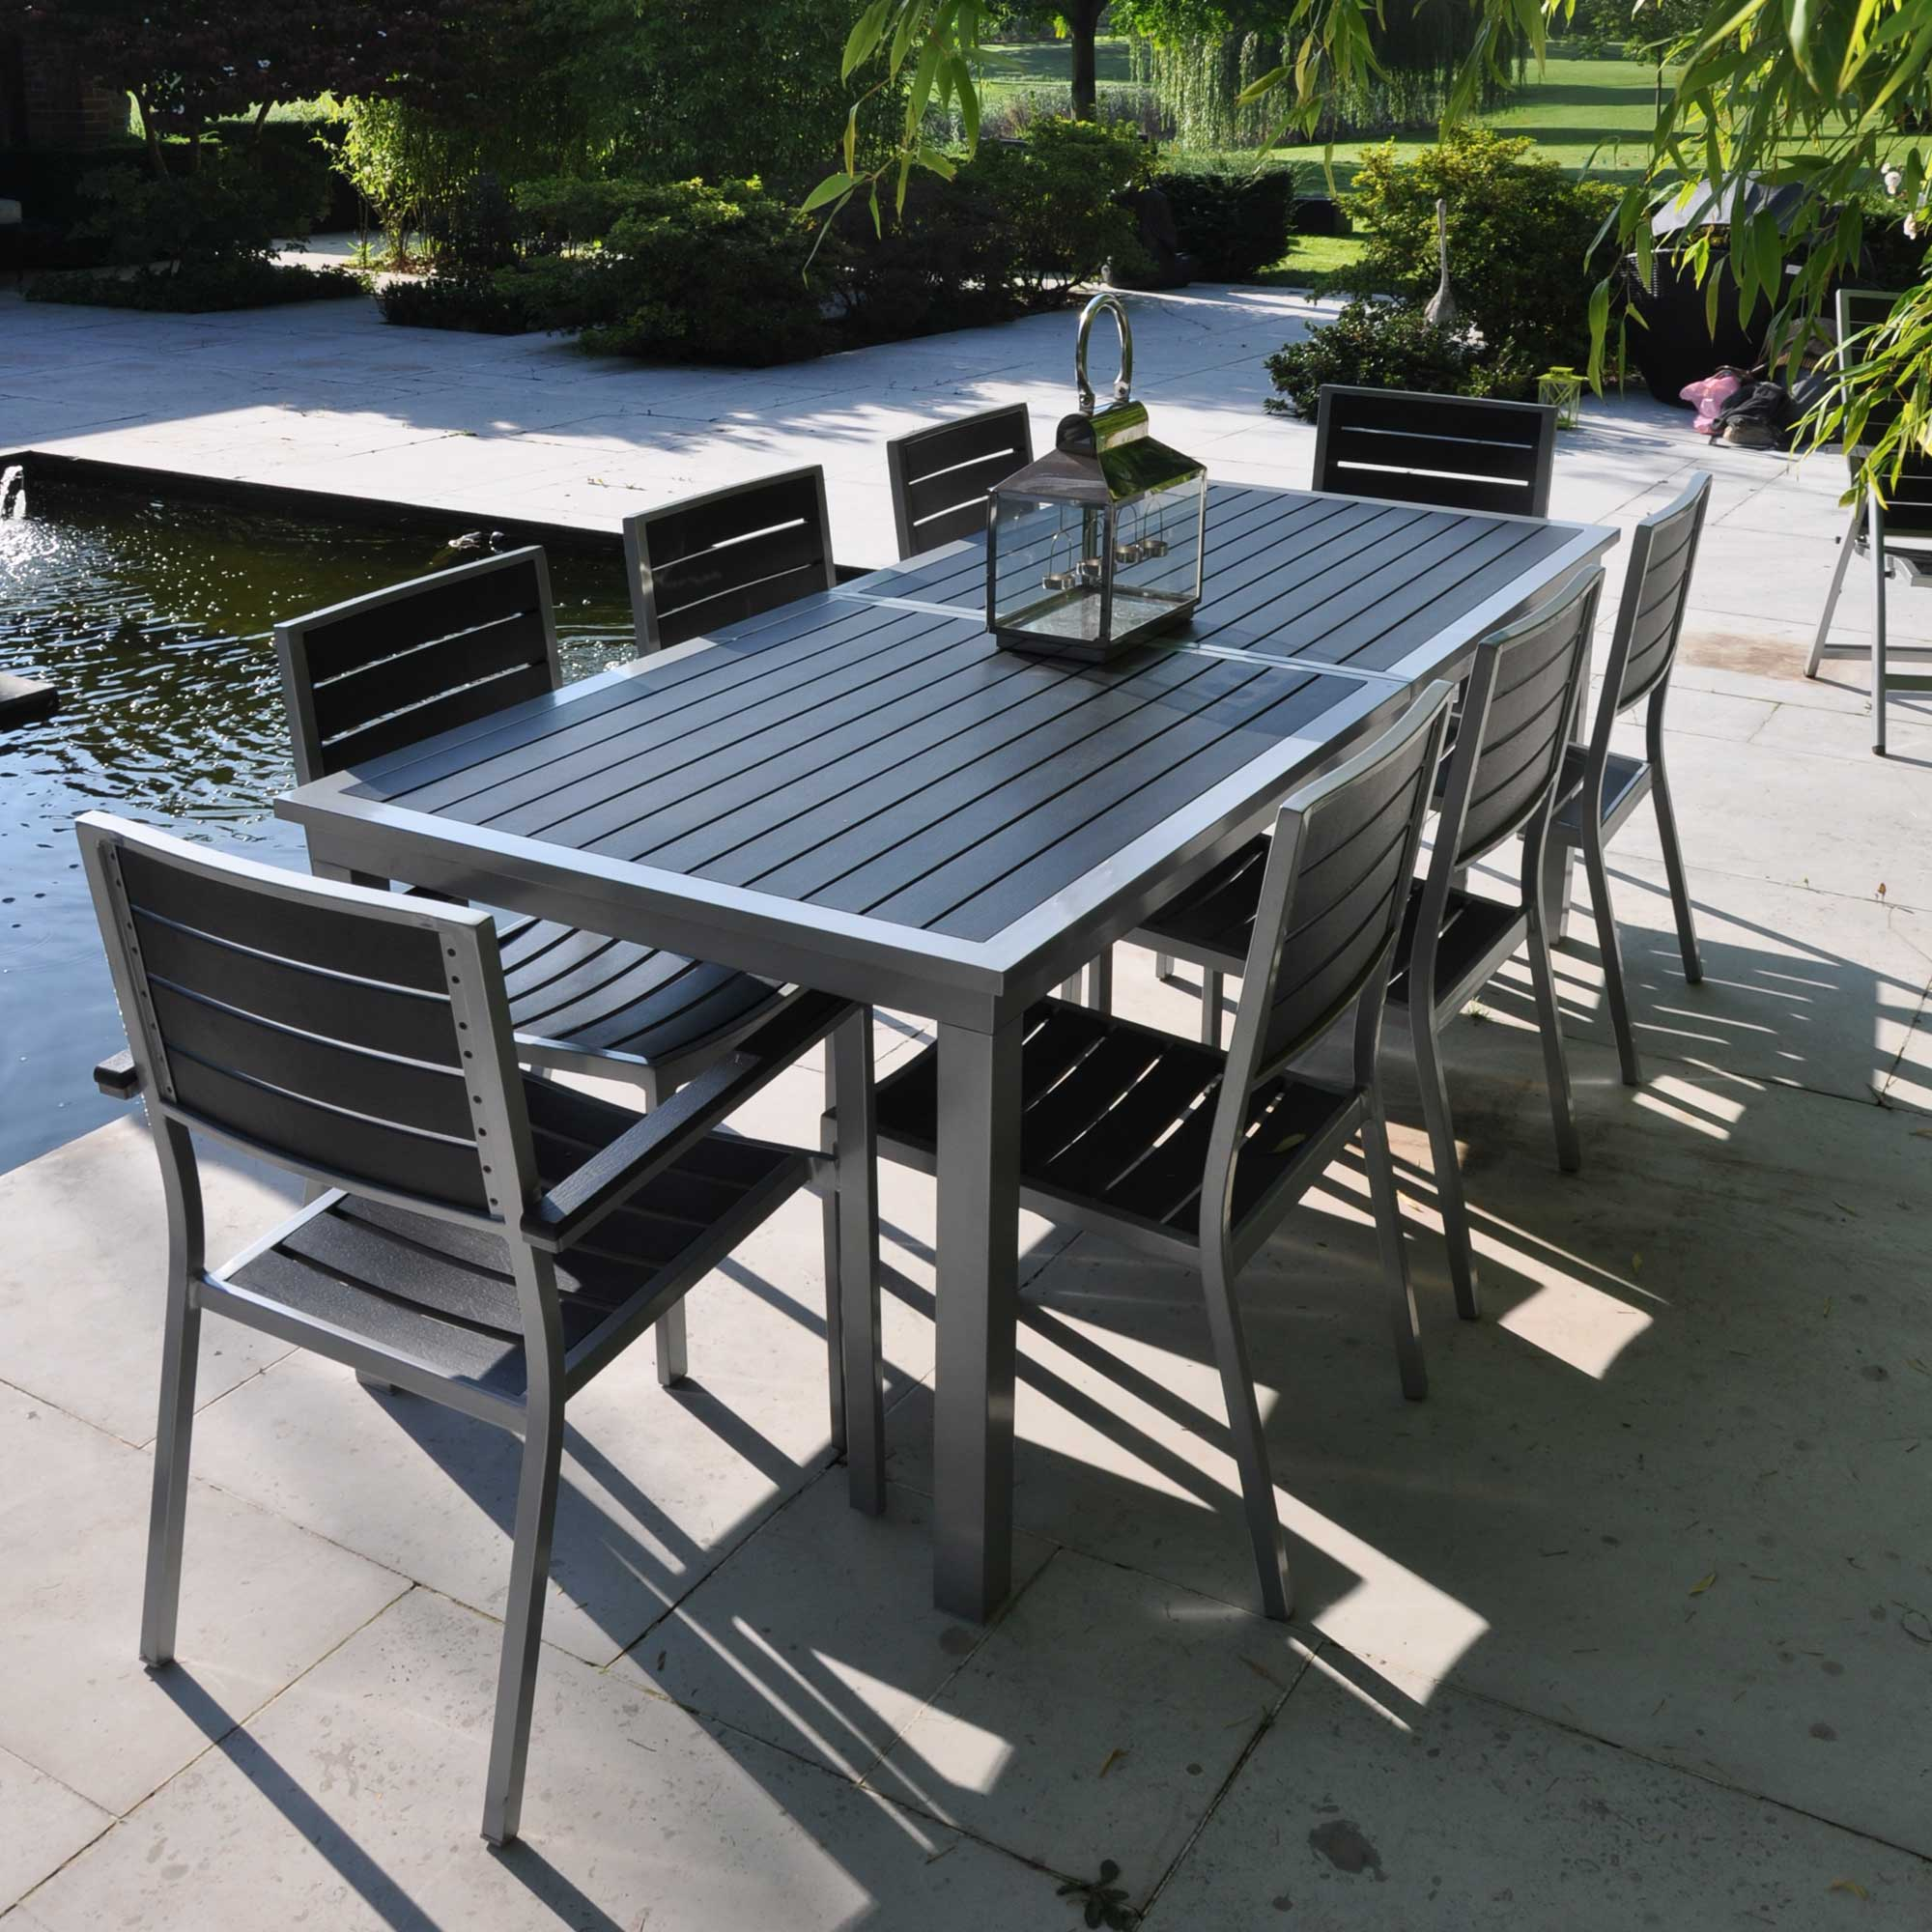 Ensemble Table Et Chaise De Jardin Ensemble Table Et Chaise De Jardin Aluminium Menuiserie